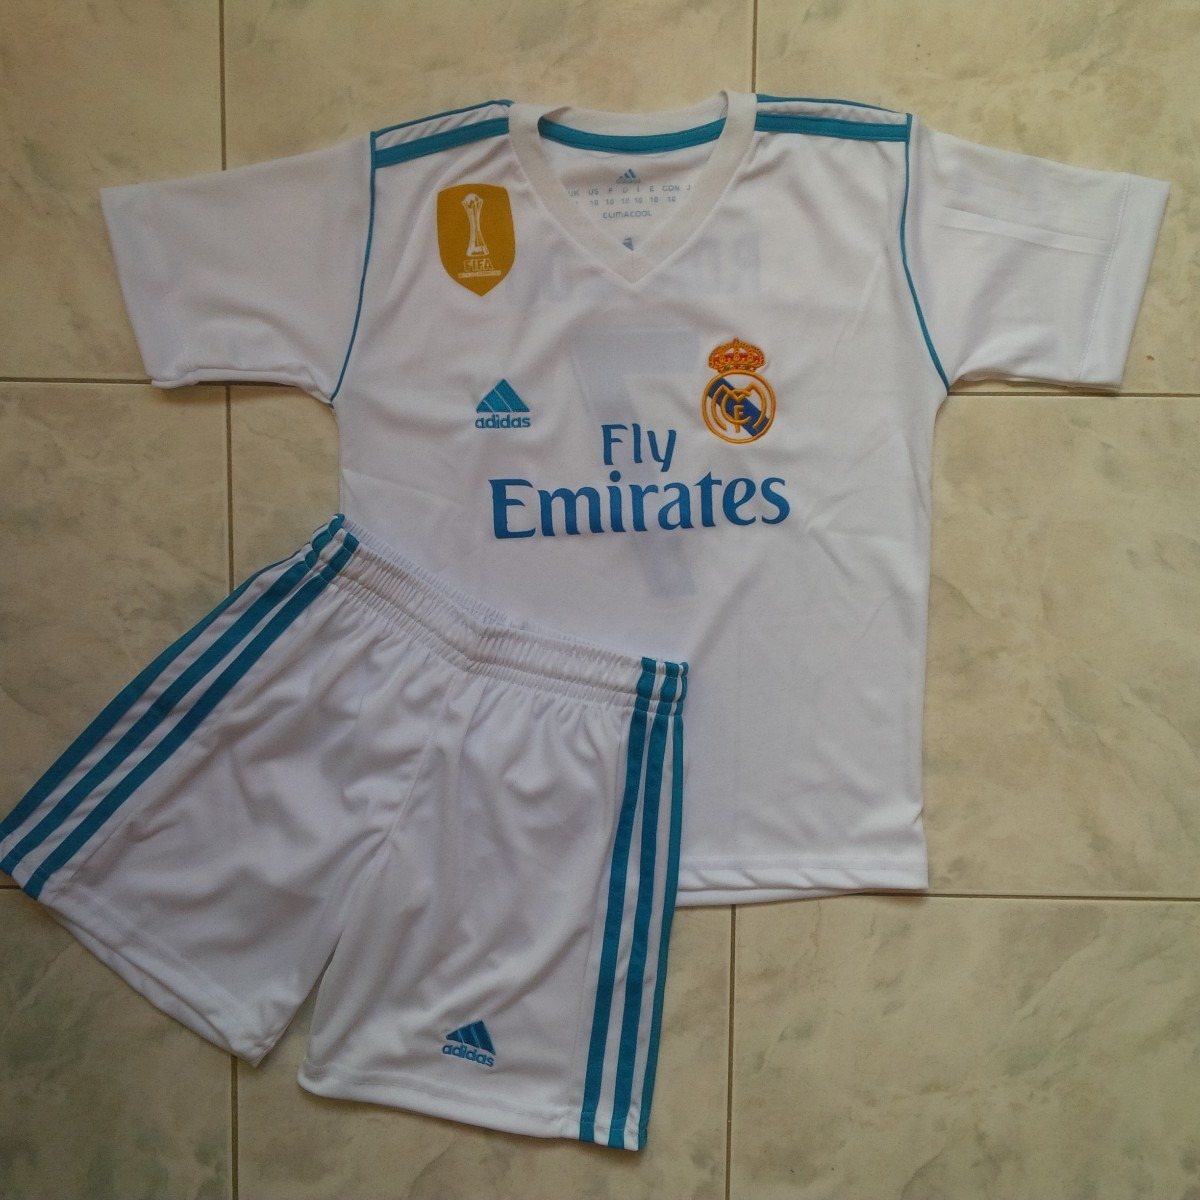 uniforme real madrid 2018 blanco local cr7 solo niños. Cargando zoom. f65c440d4ab29